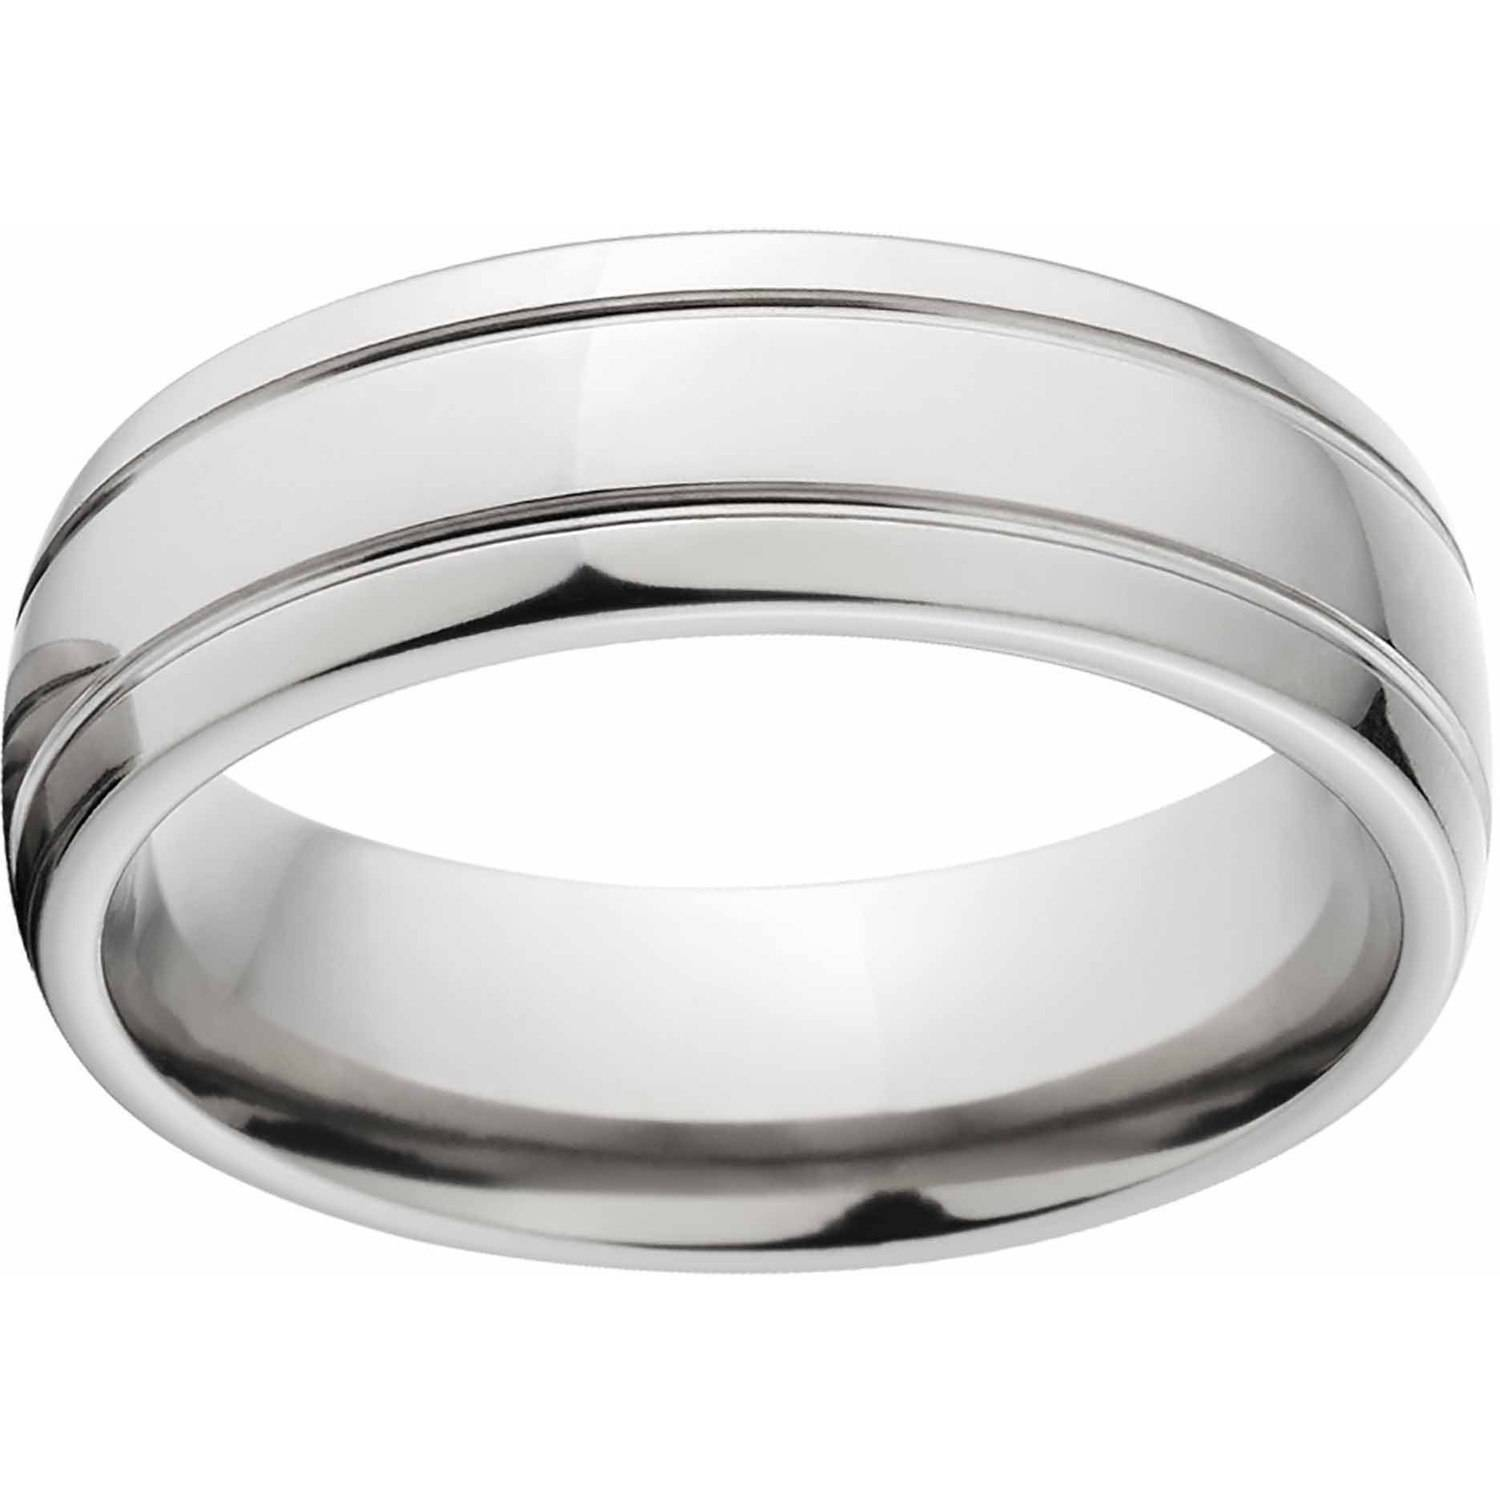 Polished 7mm Titanium Wedding Band with Comfort Fit Design